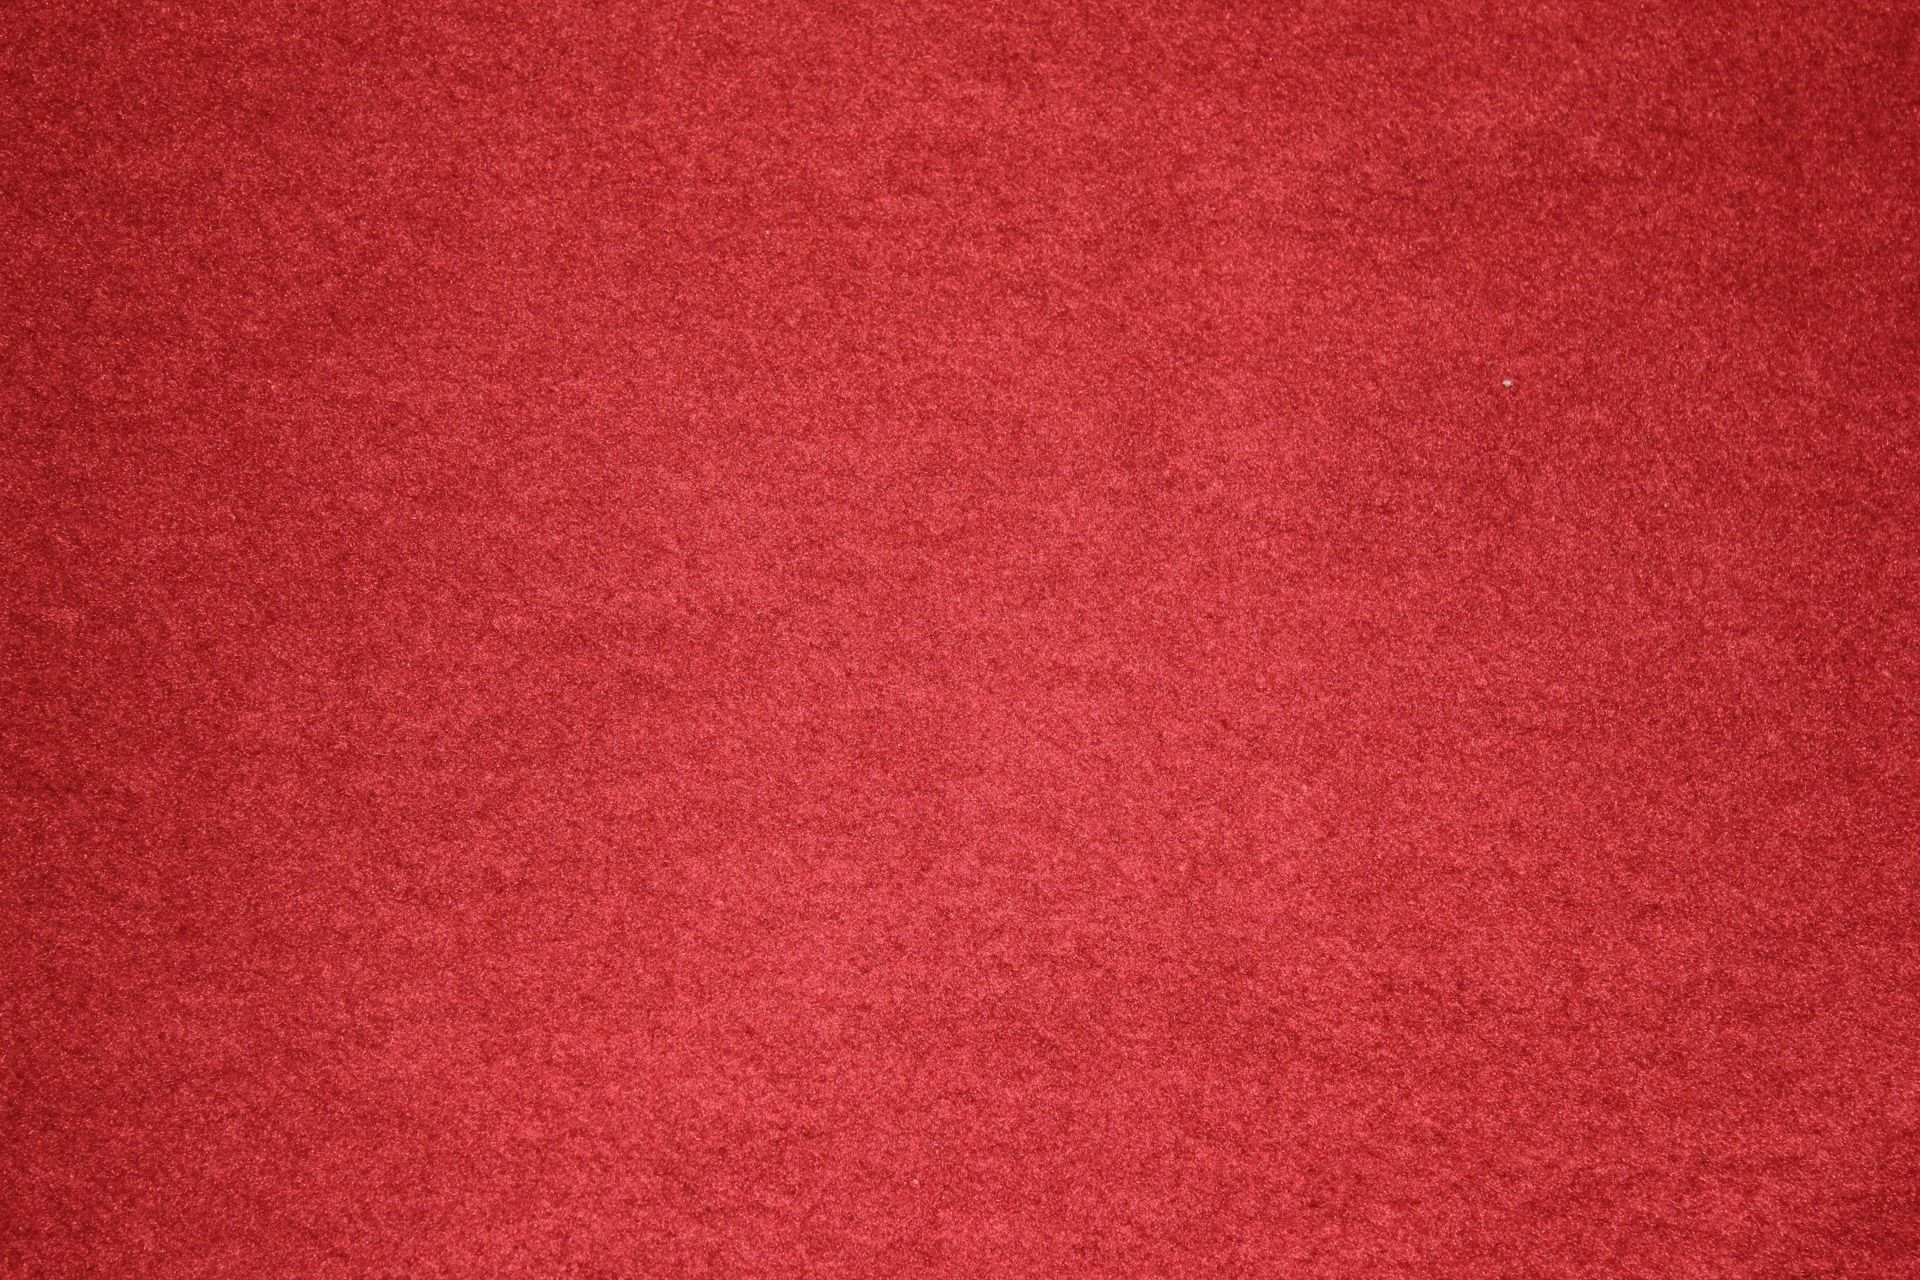 Red Texture Wallpapers Free For Desktop Wallpaper 1920 x 1280 px 738 46 KB designs white